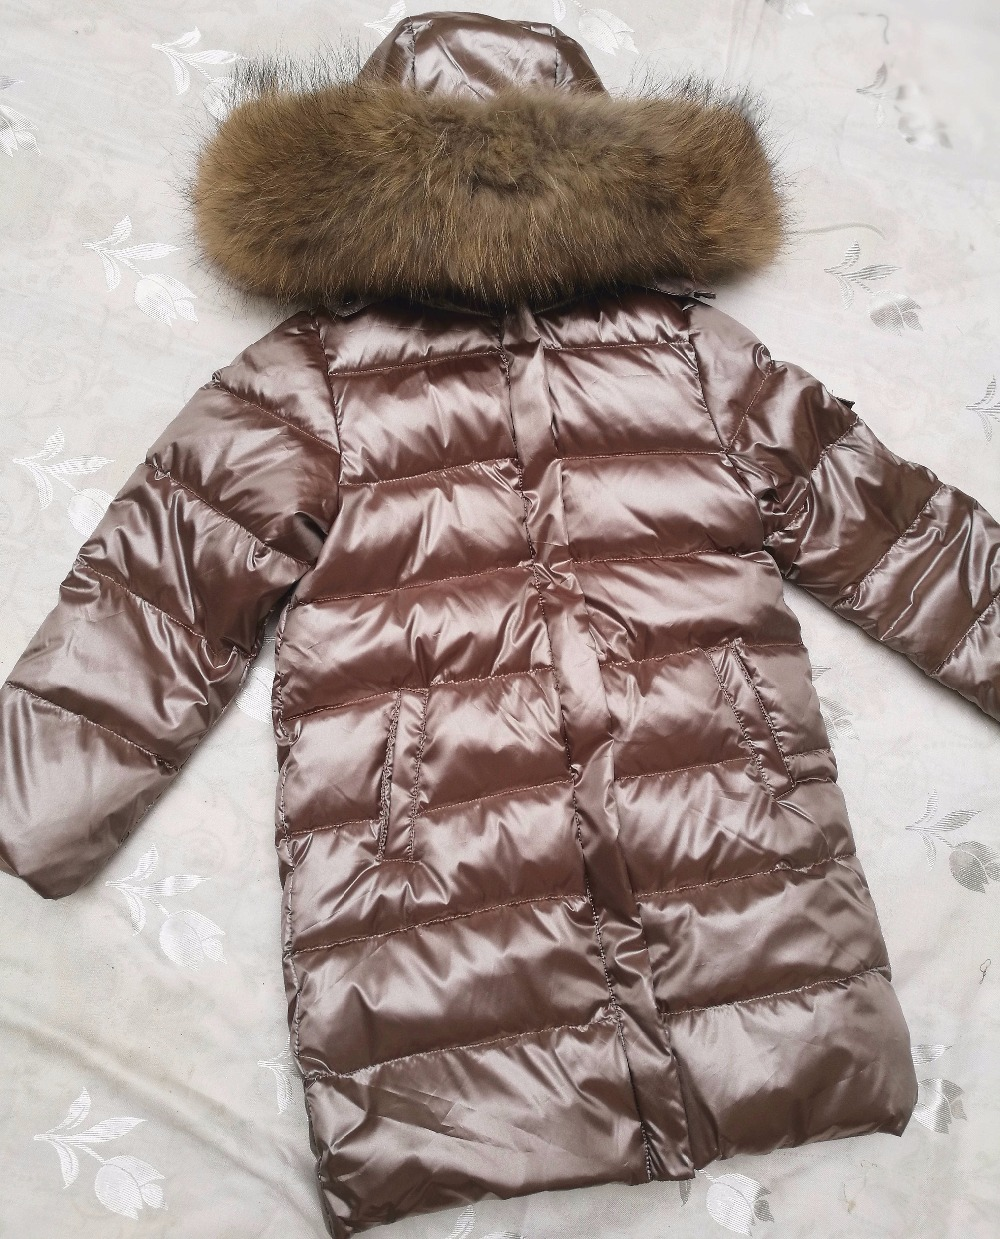 Winter Jacket Baby Girl Parkas Coat Fur Hood Winter Down Jackets Kids Hooded Down Coats Thick Children's Warm Real Fur Collar plus size women winter jackets lengthened down cotton coats high quality hooded fur collar parkas thick warm jackets okxgnz 1149